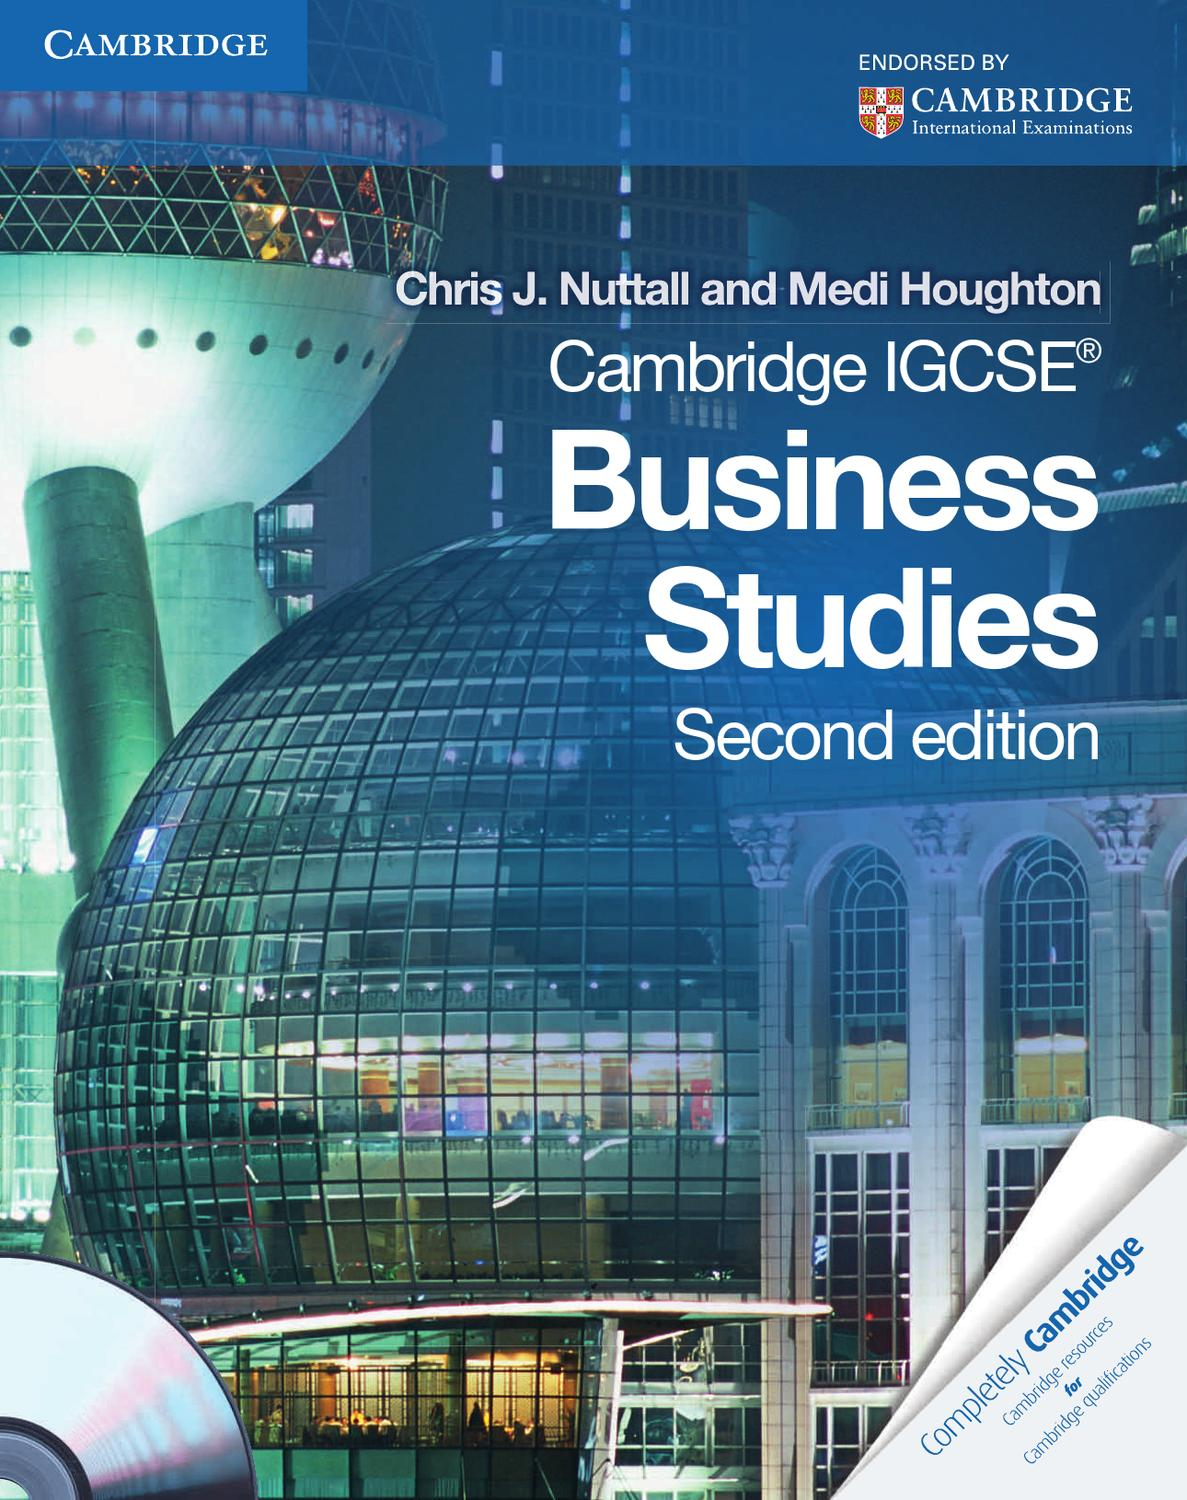 Cambridge igcse business studies coursebook with cd rom by cambridge igcse business studies coursebook with cd rom by cambridge university press education issuu fandeluxe Gallery